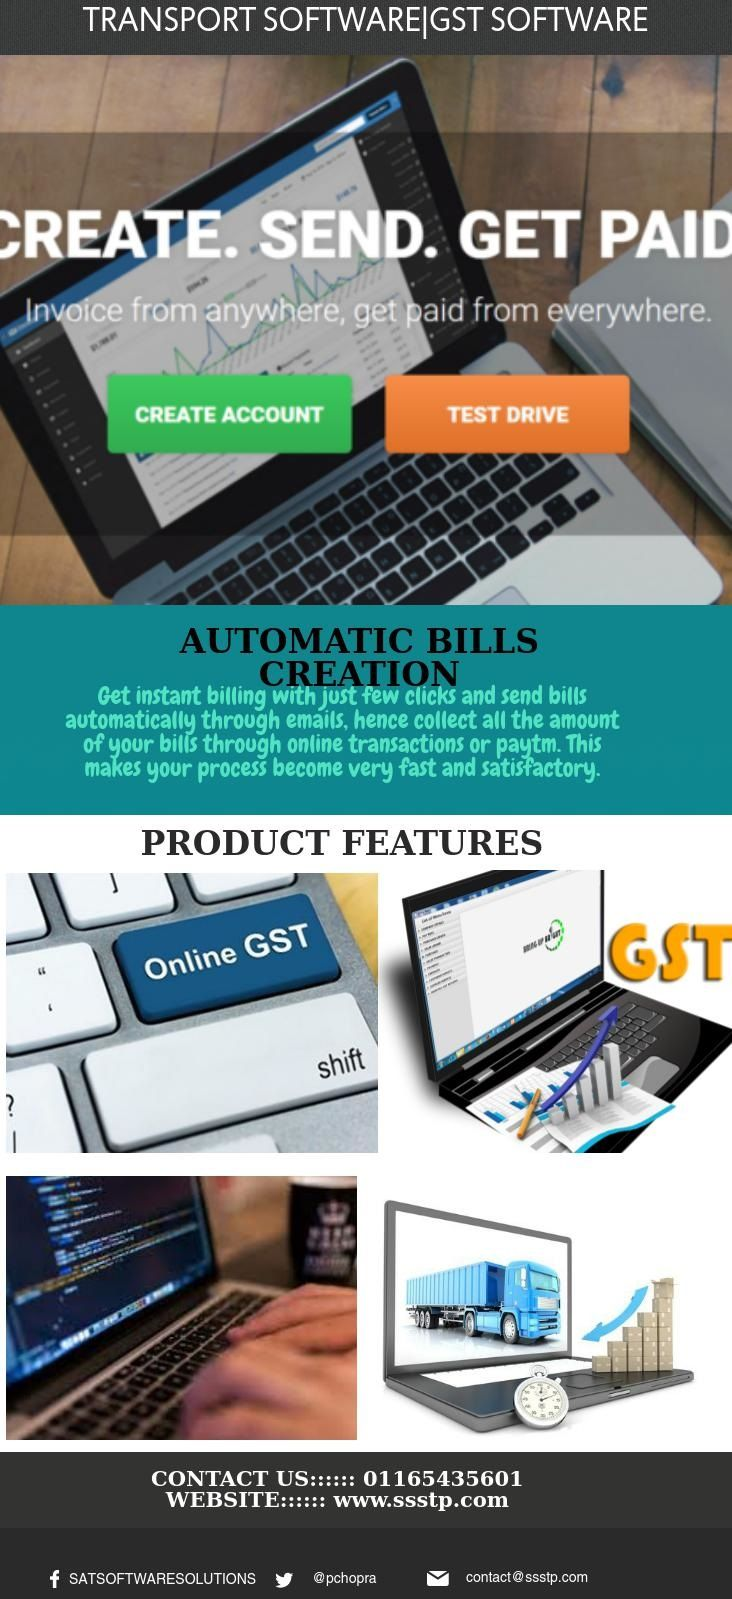 Best GST BILLING SOFTWARE Images On Pinterest Business - Invoice maker software women's clothing stores online